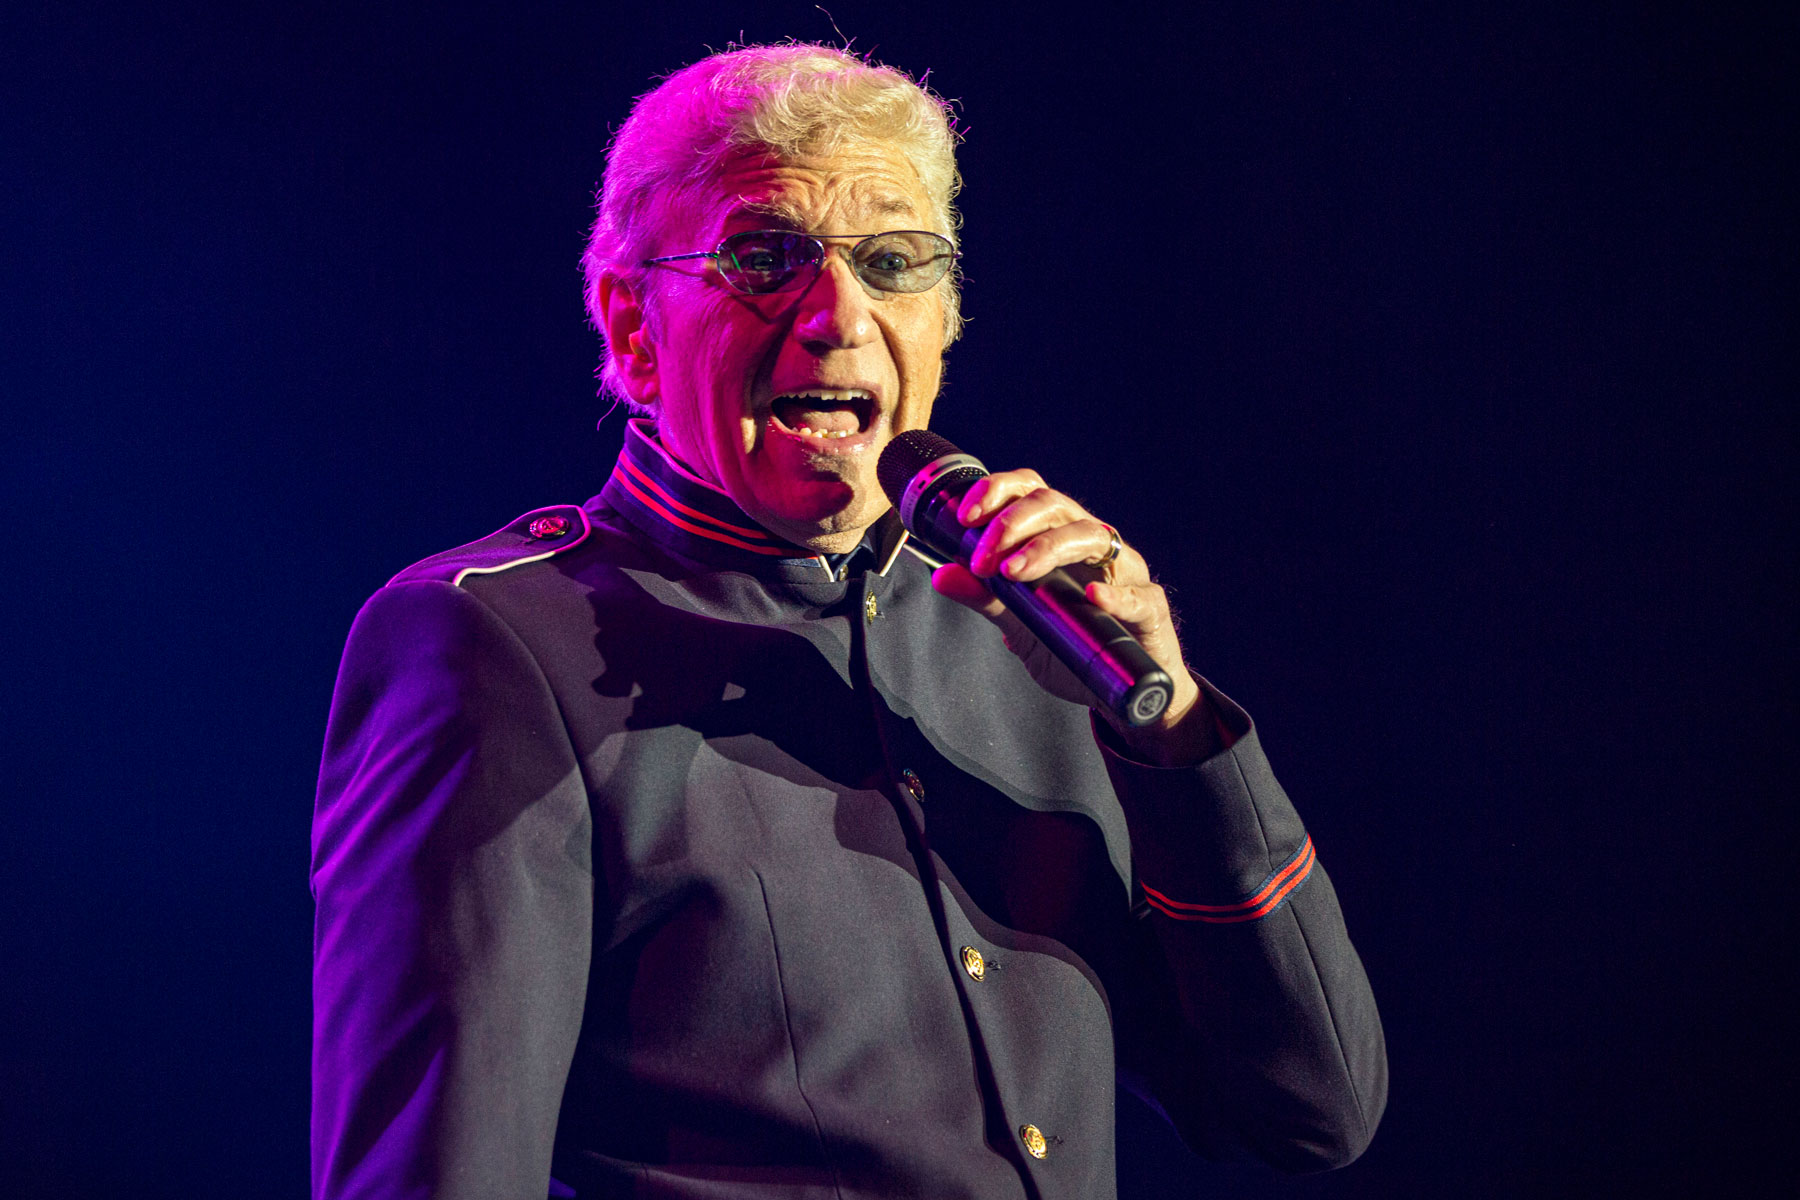 Dennis DeYoung: 'Styx Should Do One Last Tour for the Fans' - EpicNews